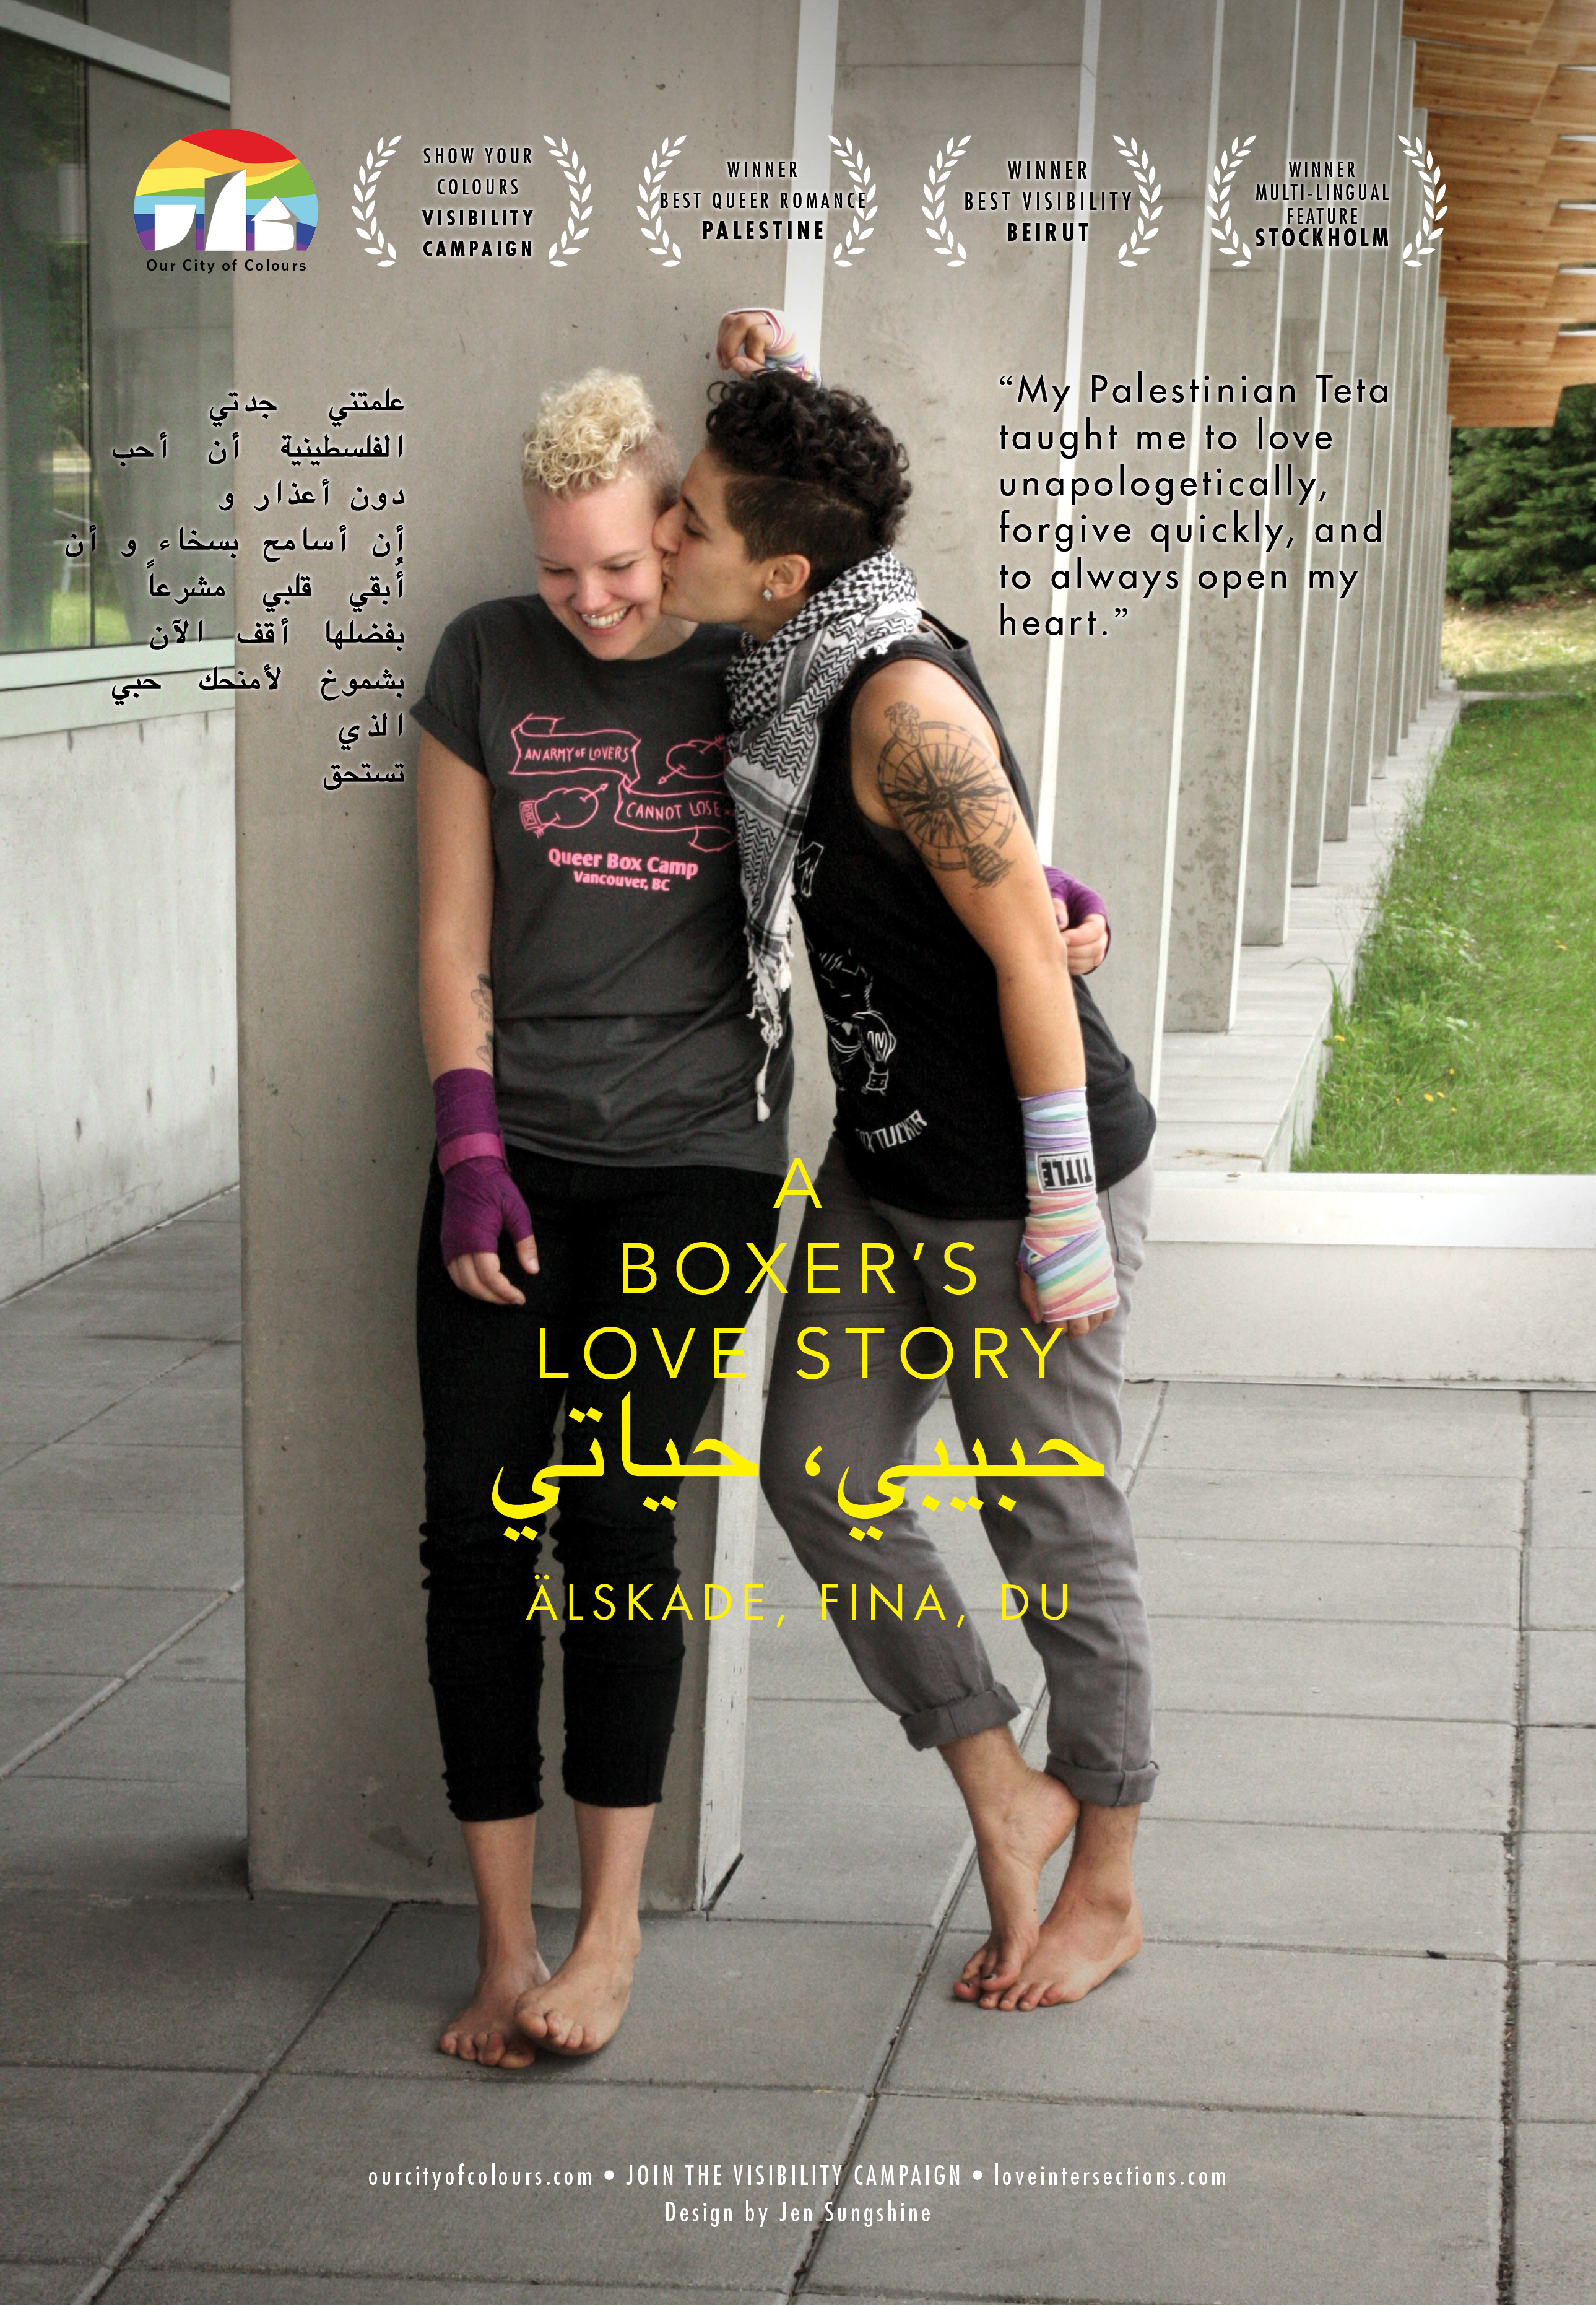 a boxer's love story // languages: arabic & swedish – love intersections